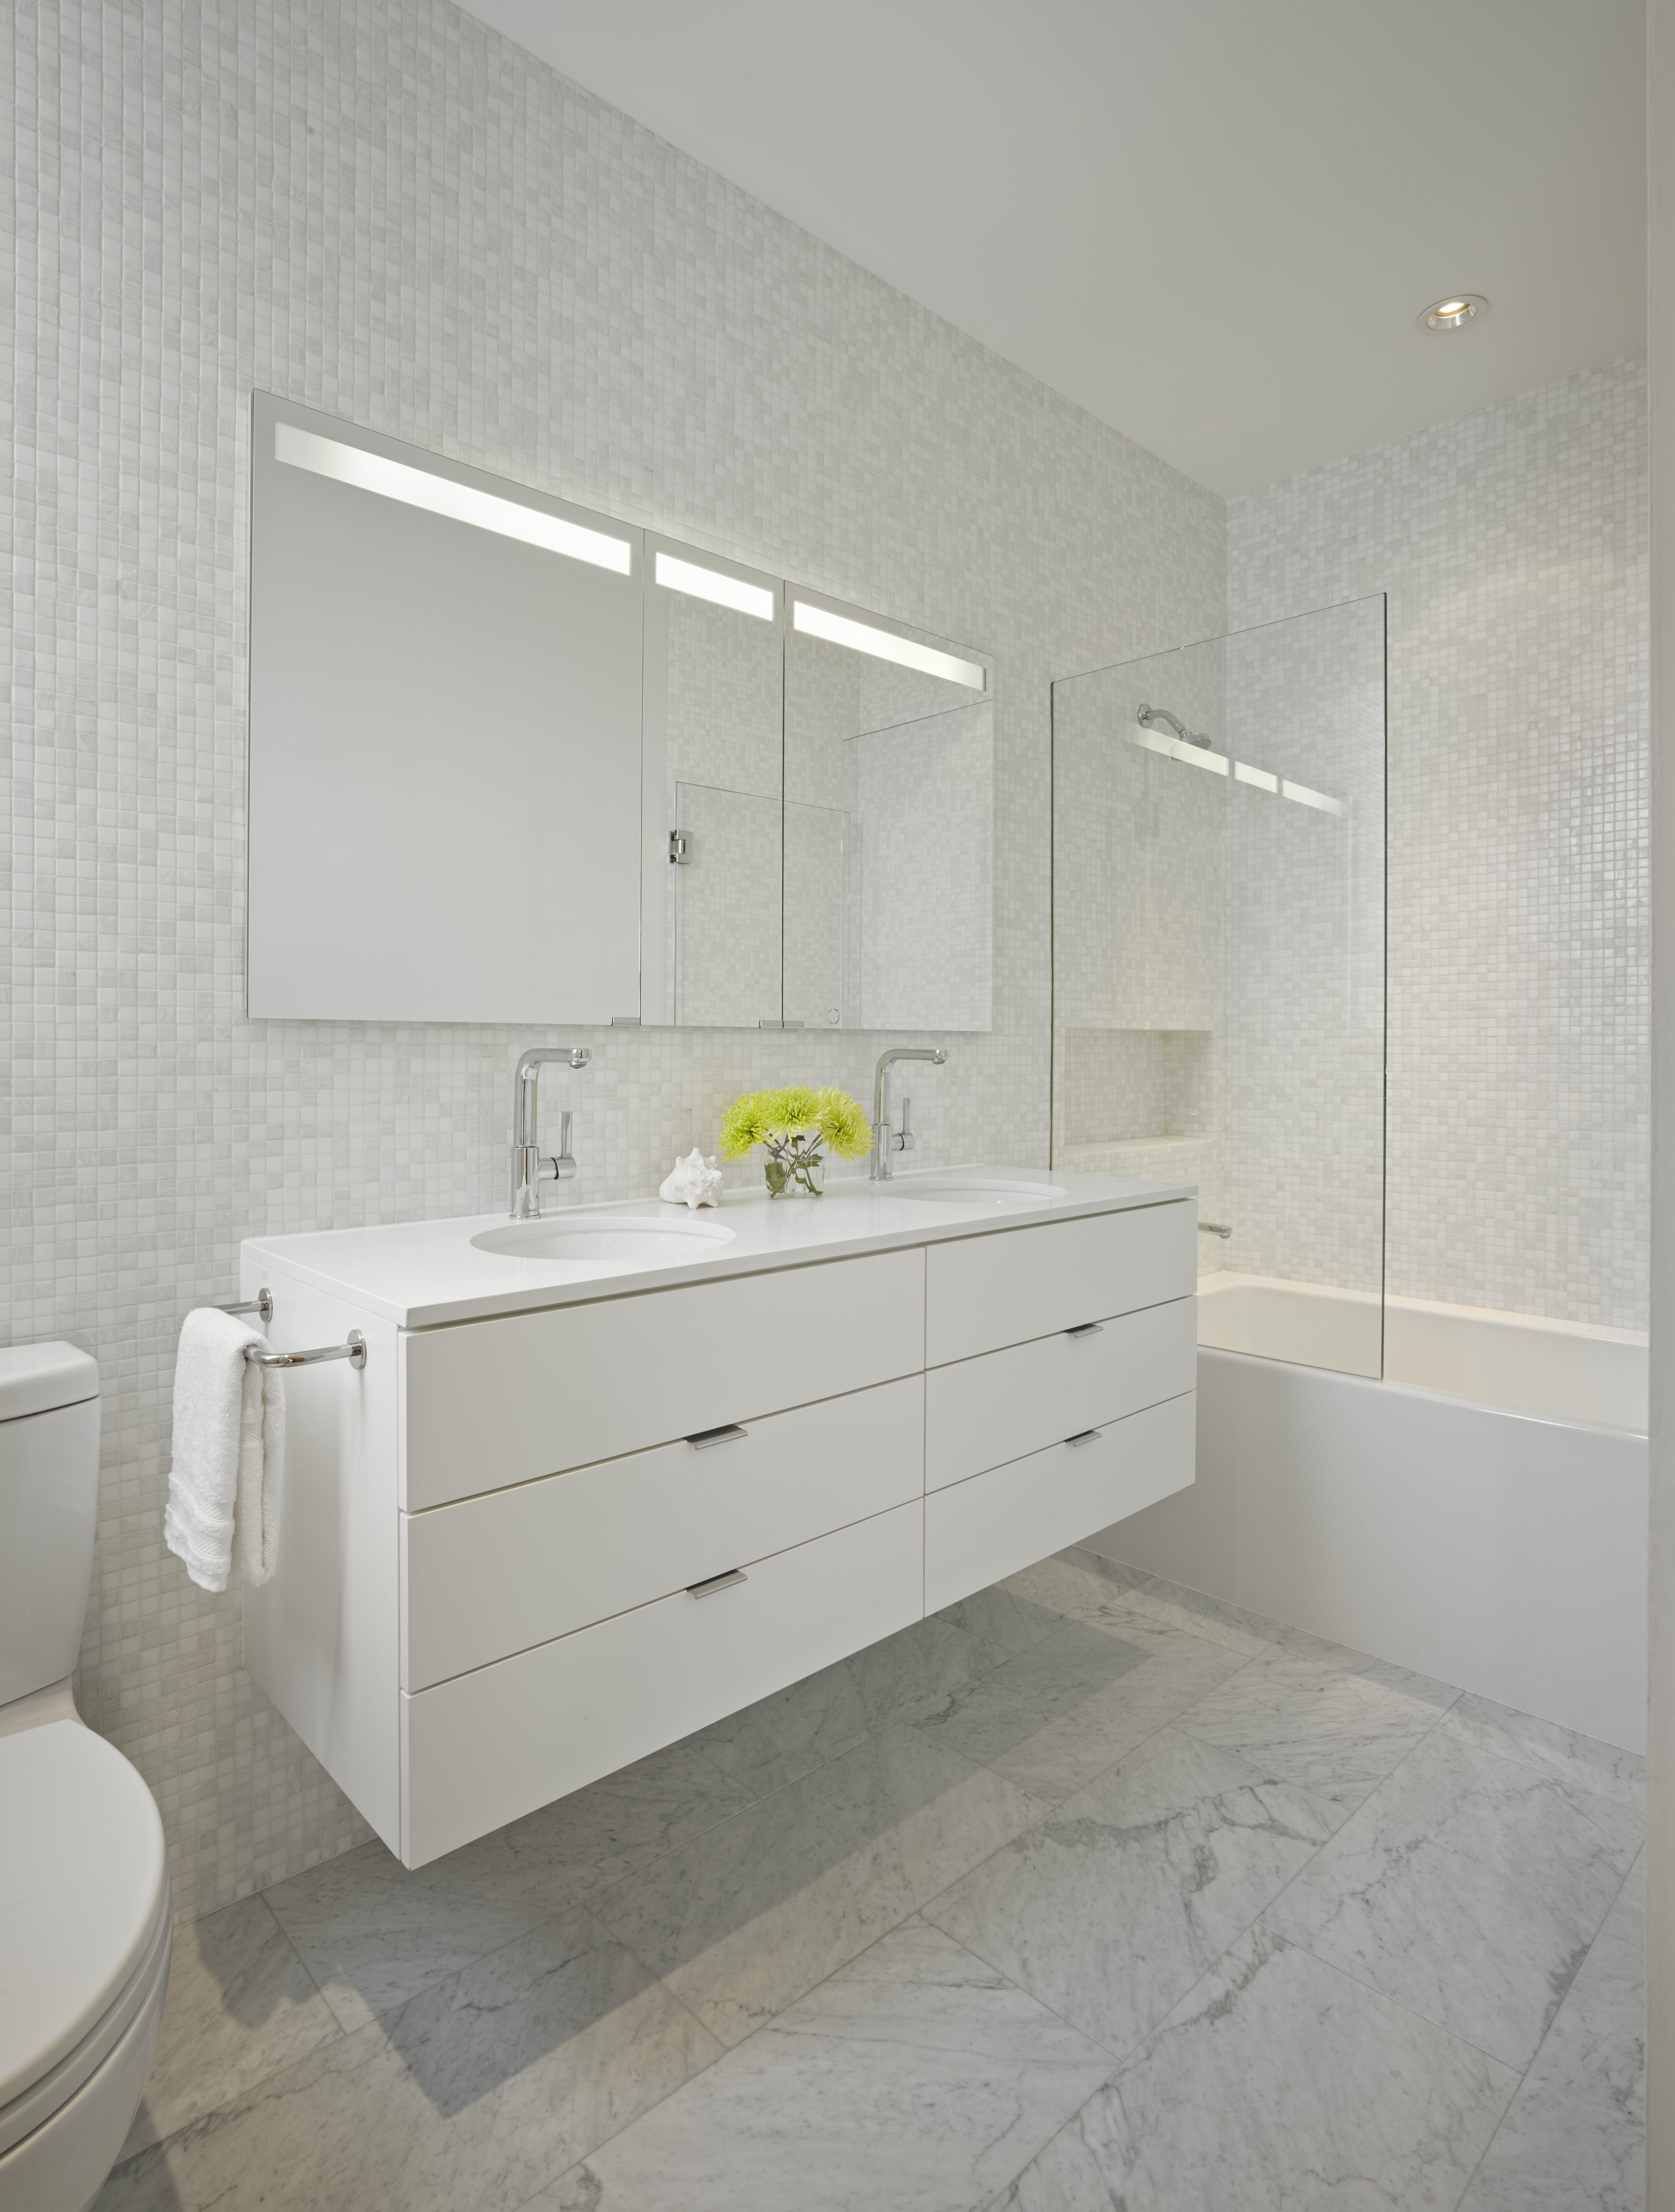 International cabinets burnaby for Bathroom cabinets surrey bc